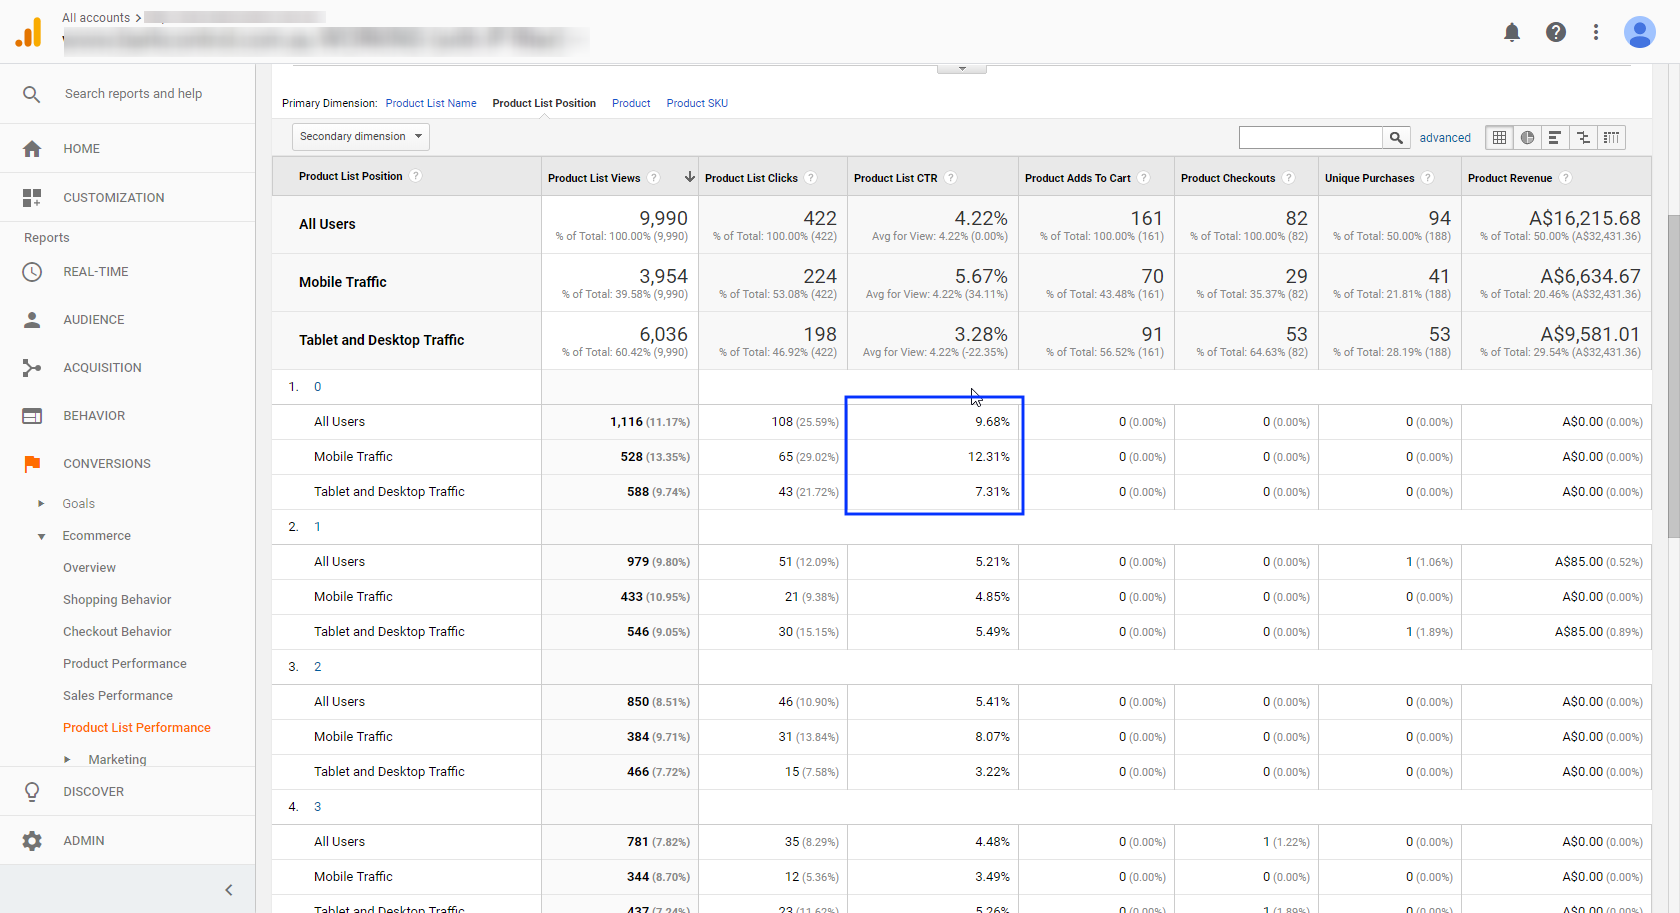 Google Enhanced Ecommerce Product List Performance